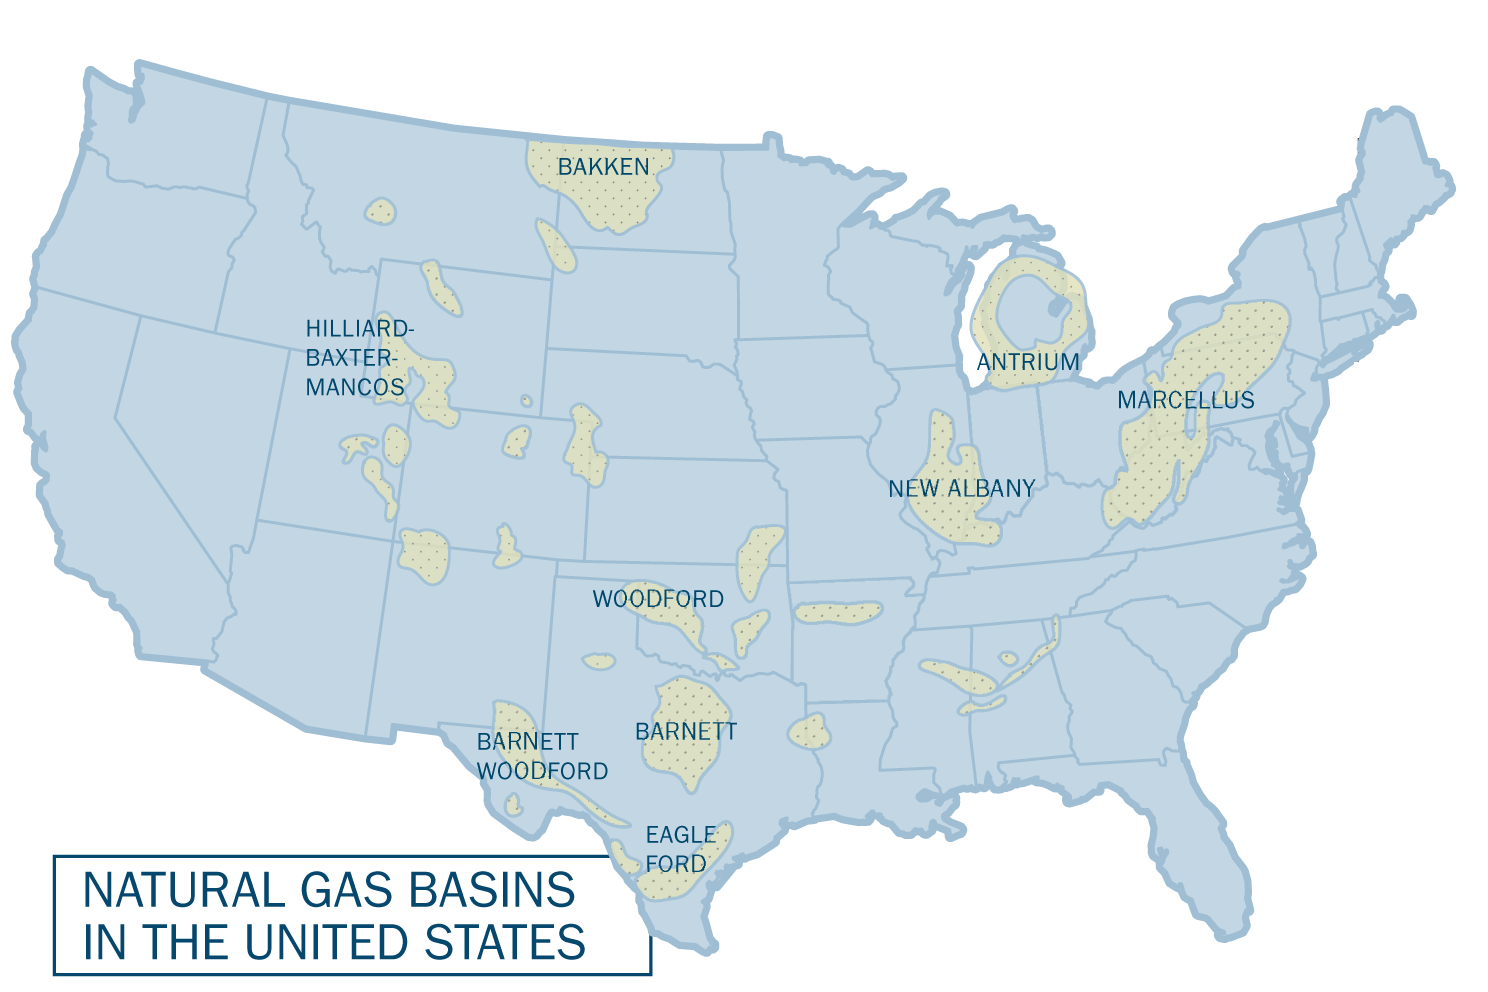 Michael McElroy and Xi Lu on natural gas fracking and US